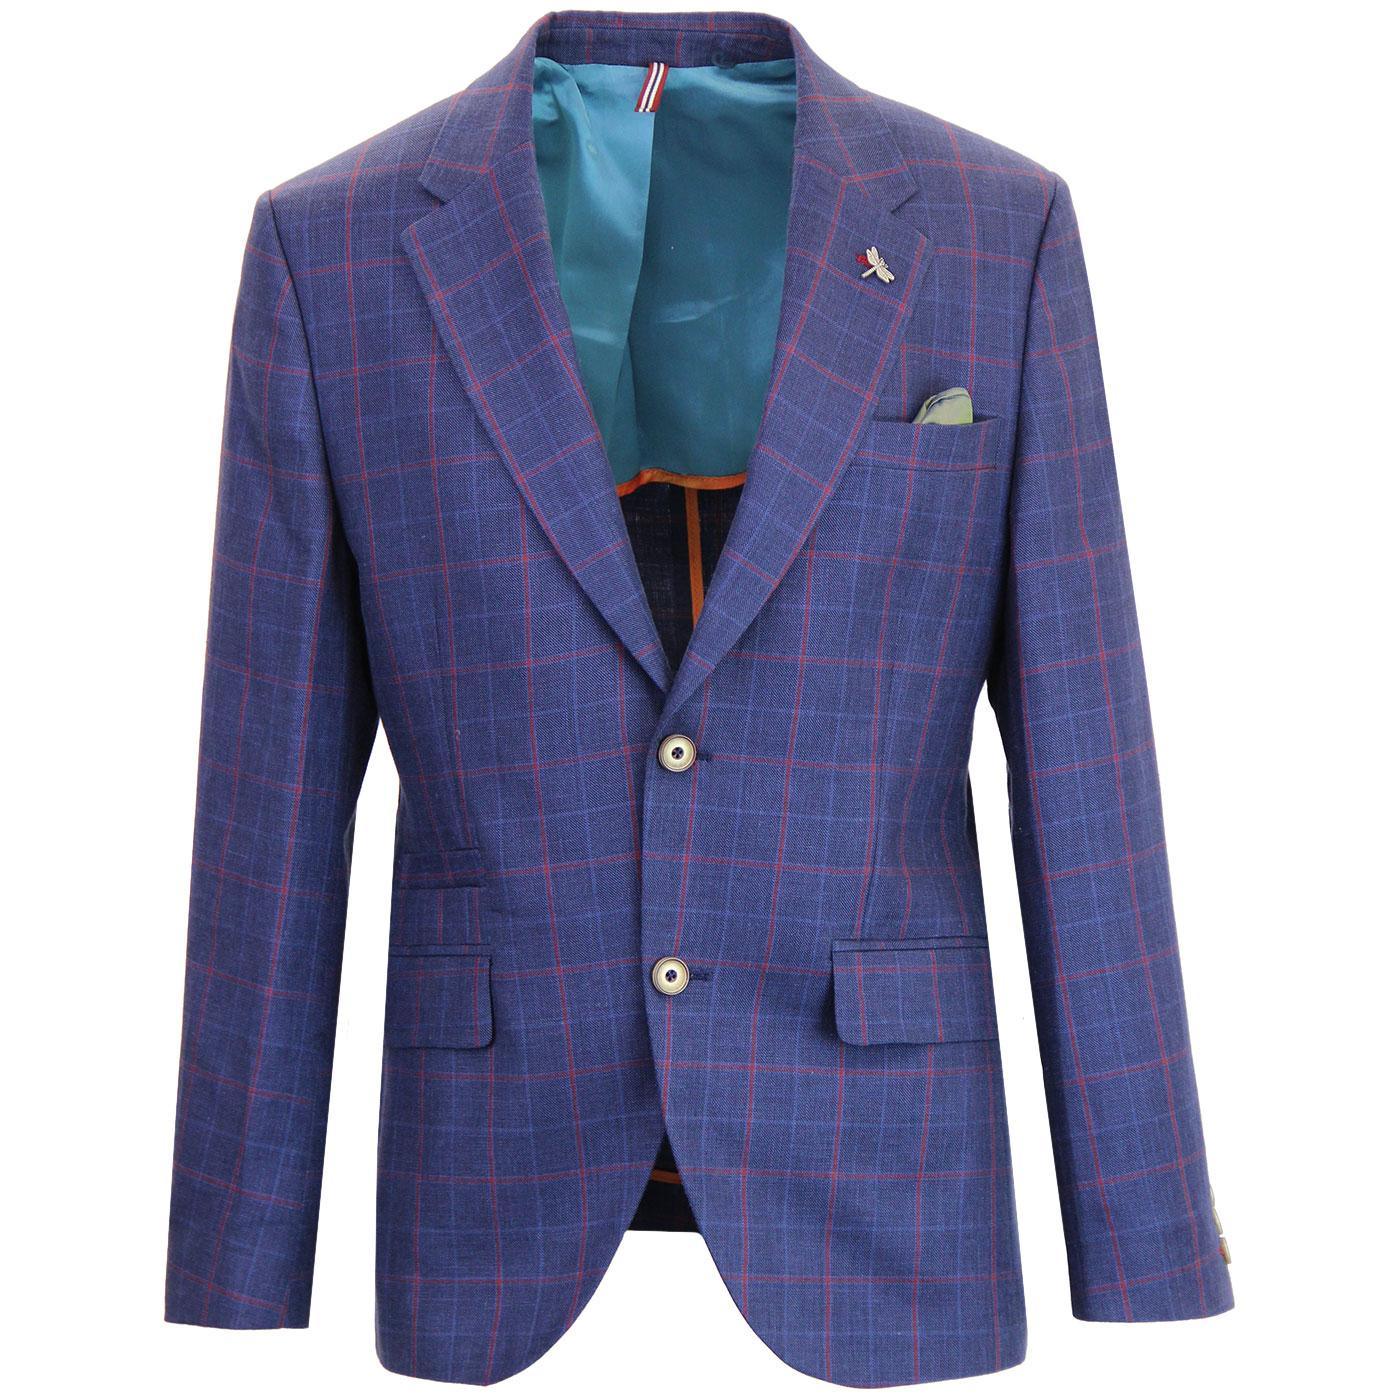 Greenwich GIBSON LONDON 60s Mod Check Linen Blazer